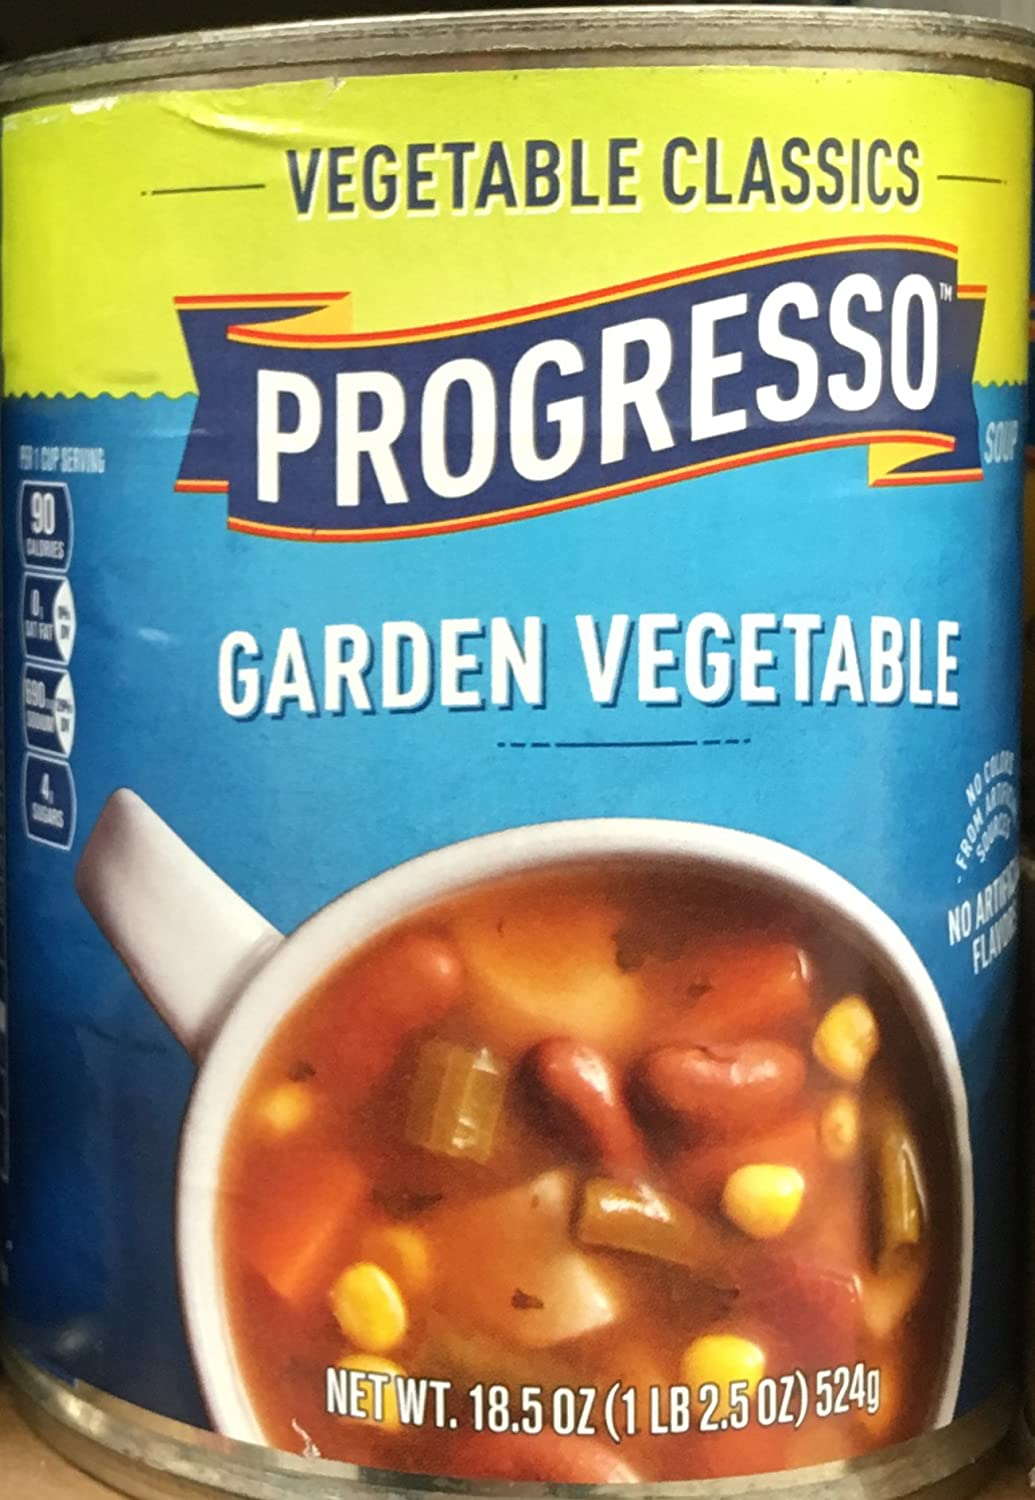 quality assurance Progresso Soup GARDEN VEGETABLE Vegetable 18.5oz Classics Same day shipping 5 Can